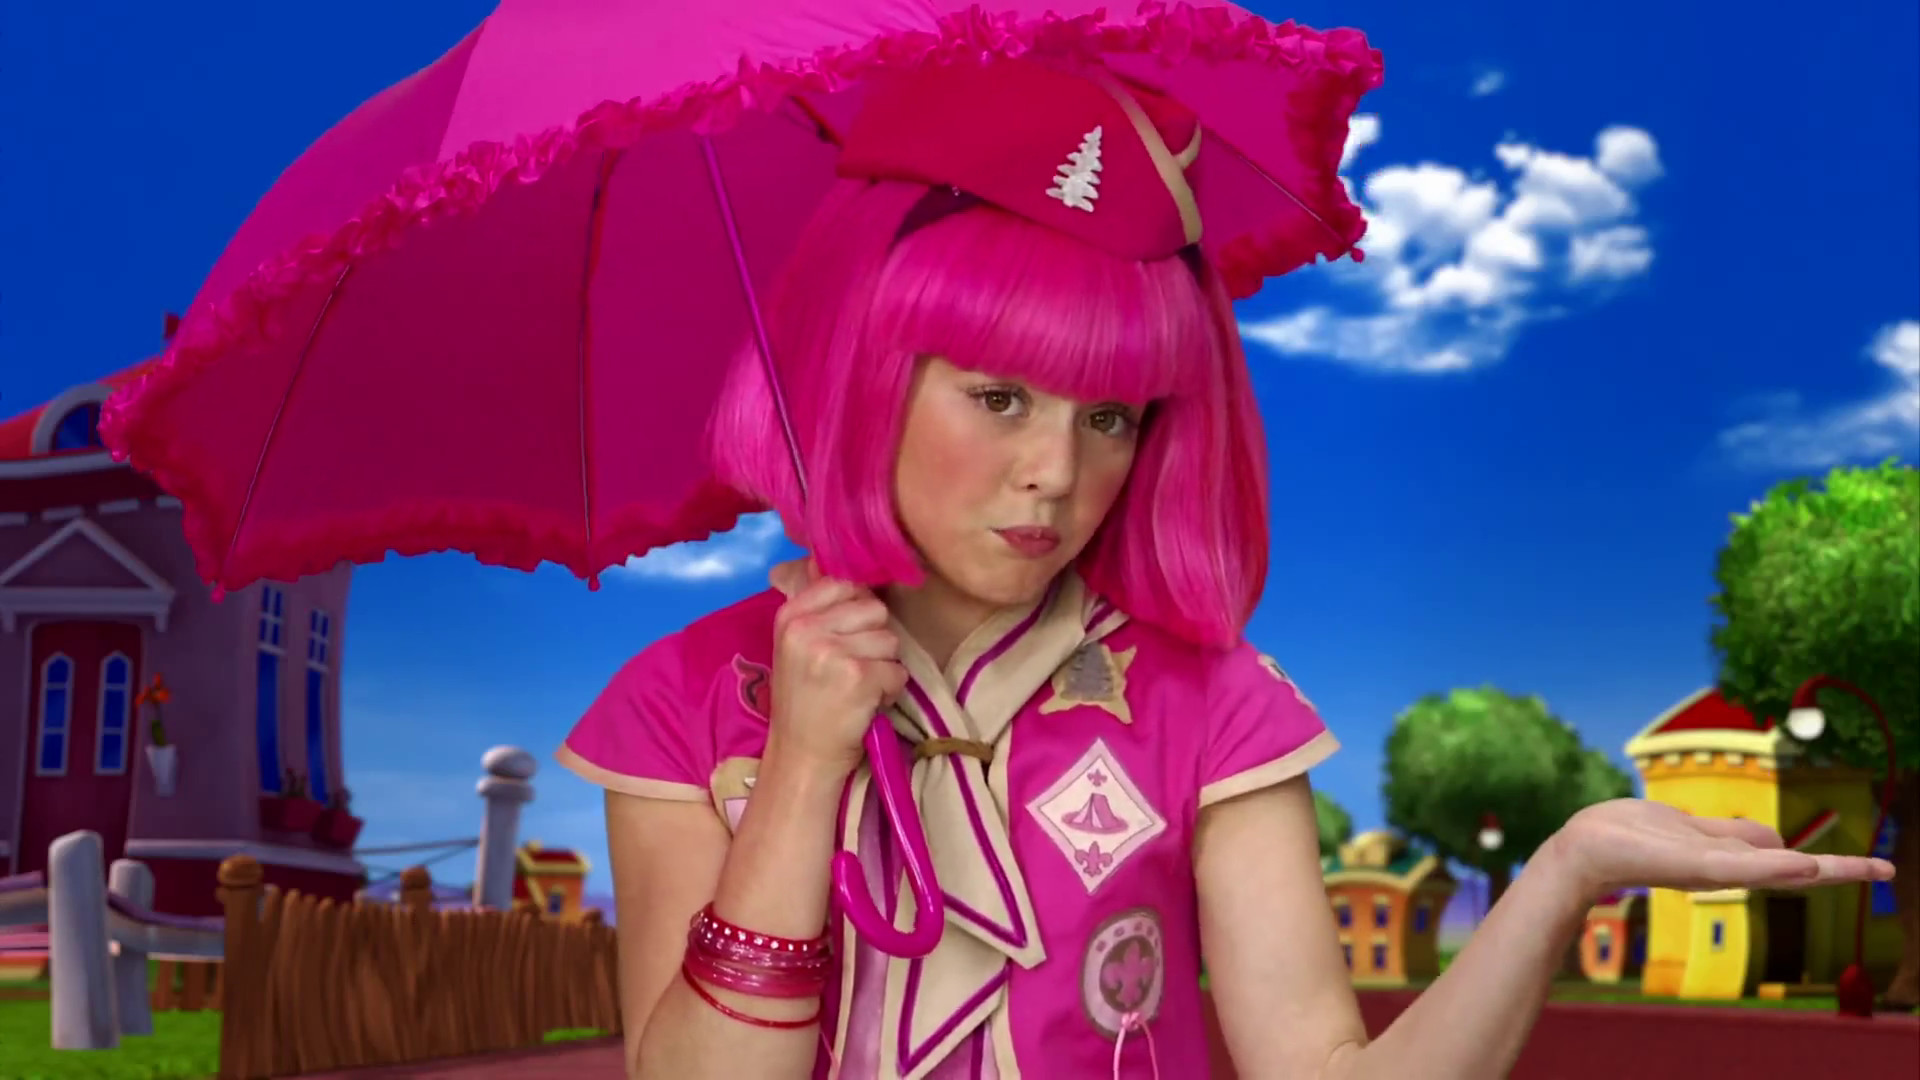 Lazytown Wallpaper 66 Images